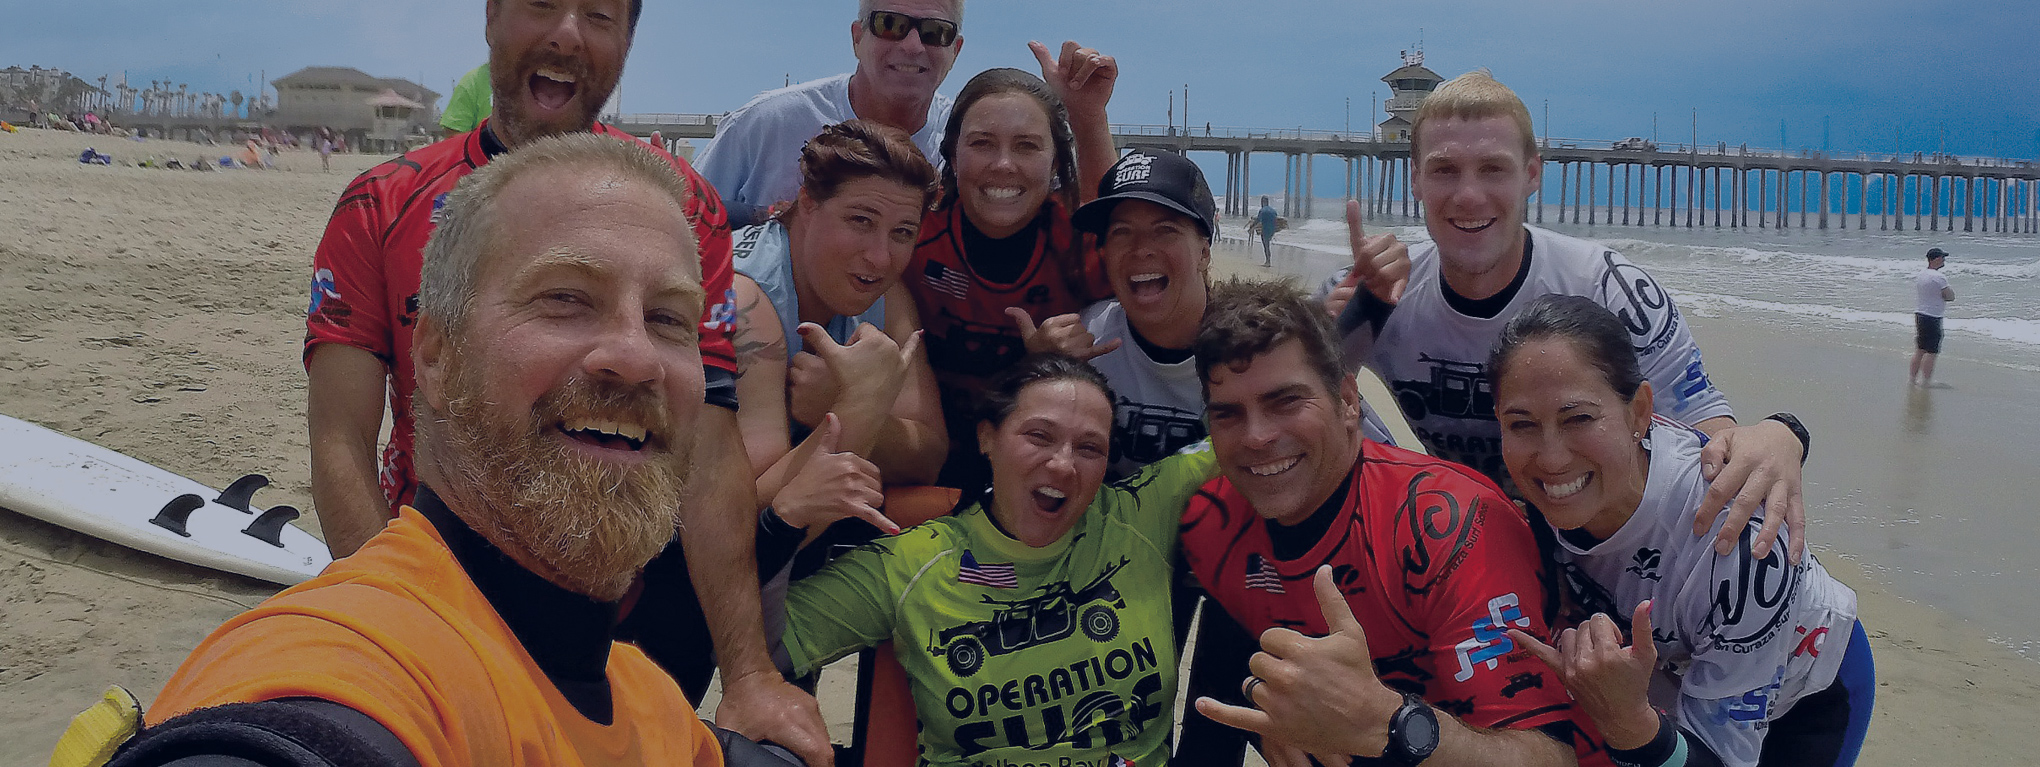 Operation Surf participants celebrate together